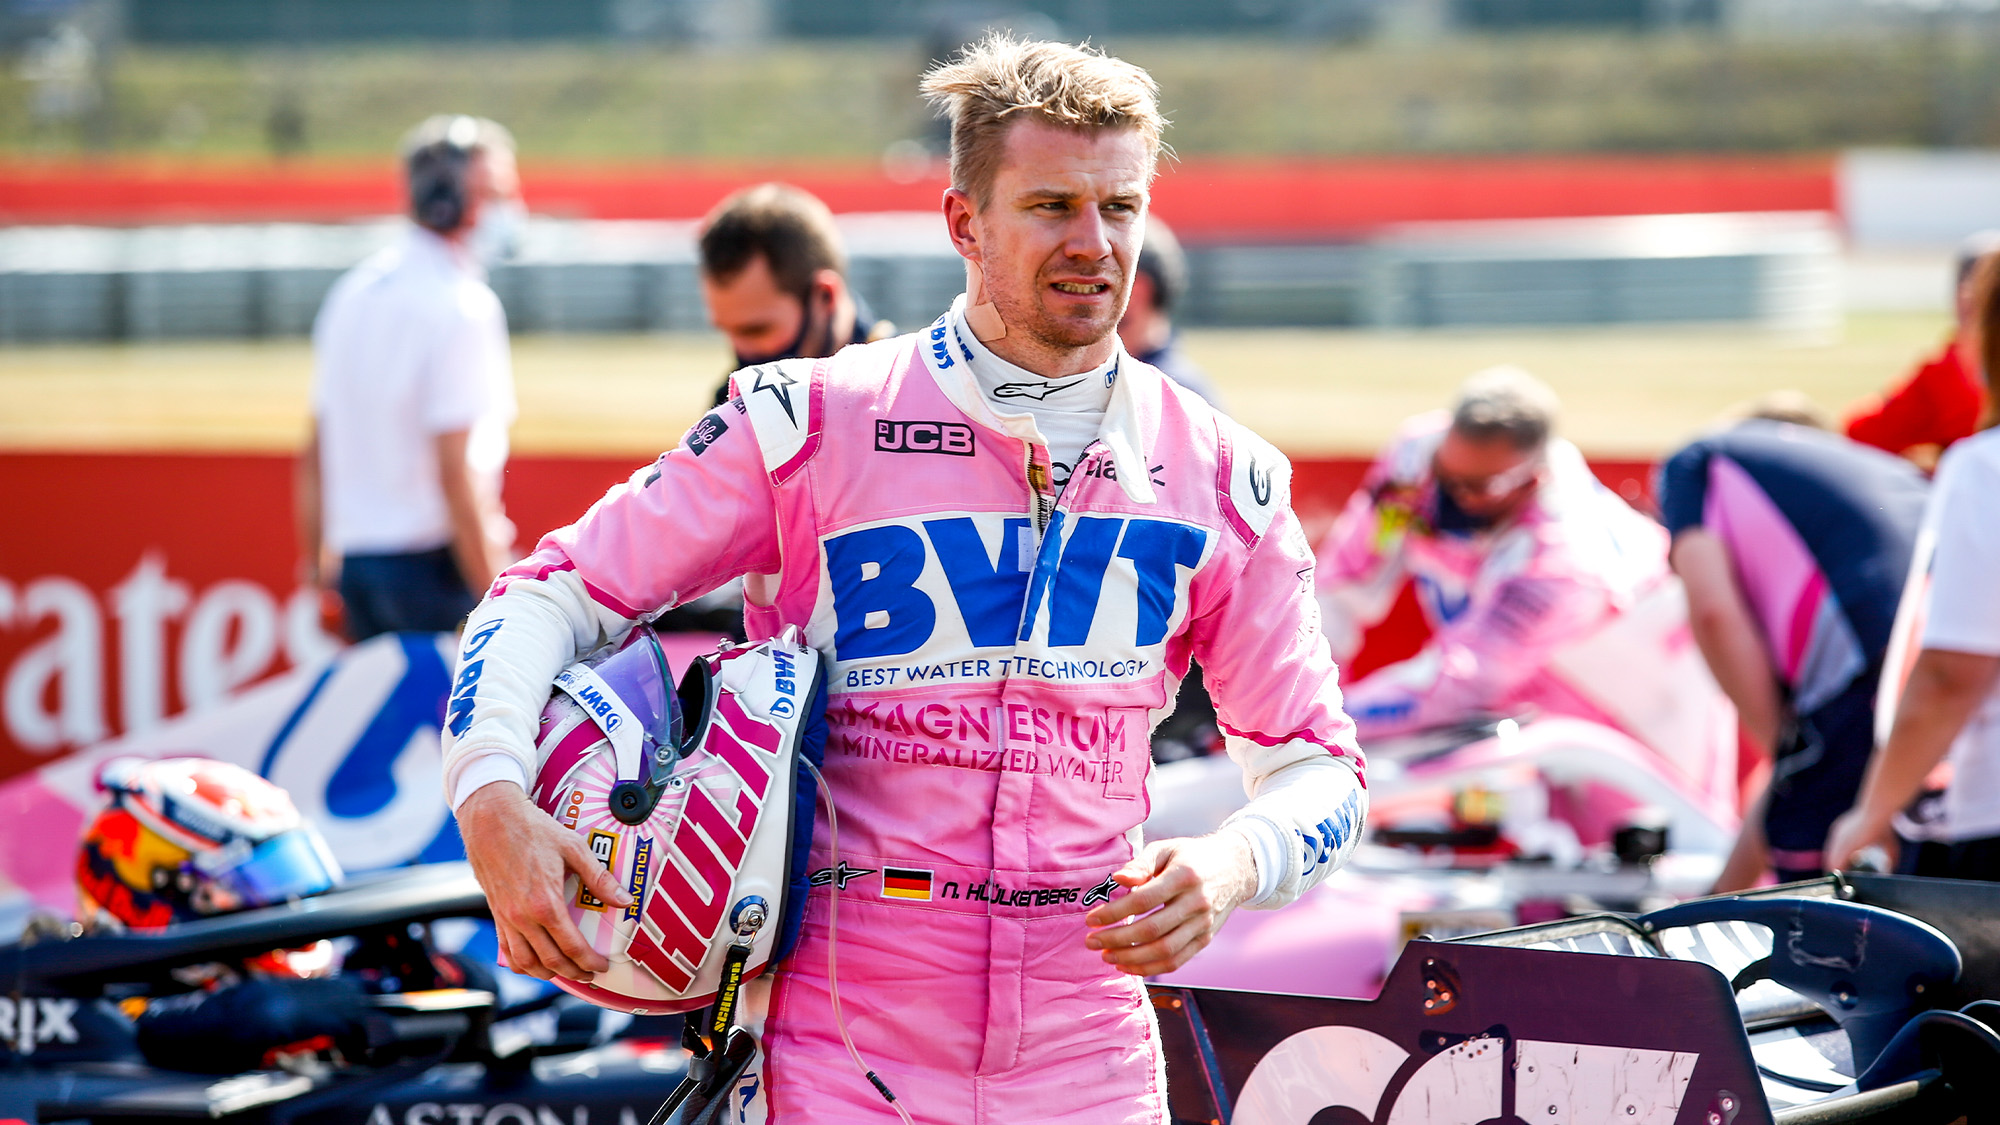 Nico Hulkenberg at Silverstone after the F1 70th Anniversary Grand Prix